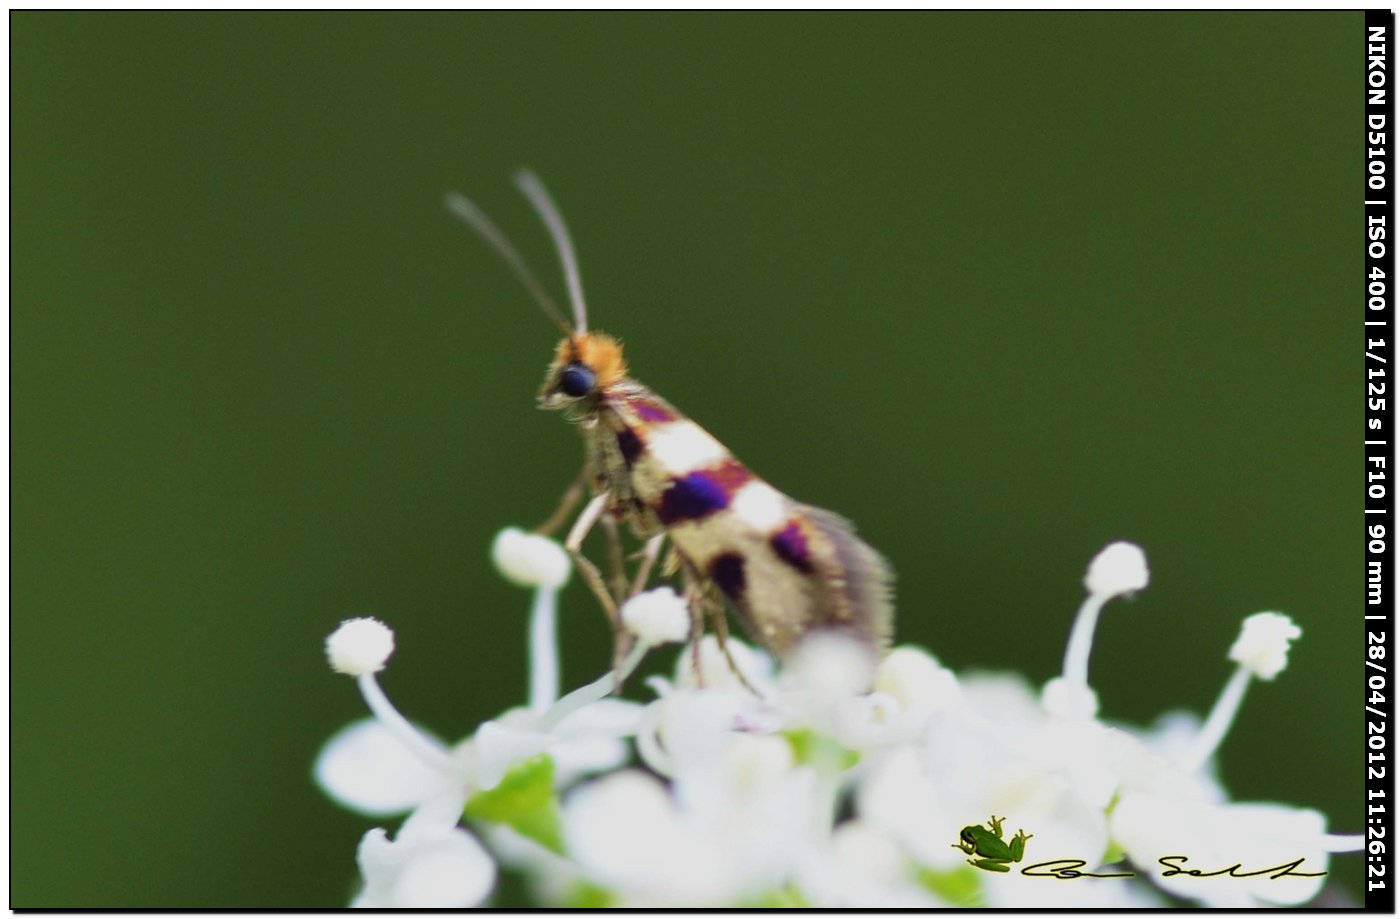 Micropterix?